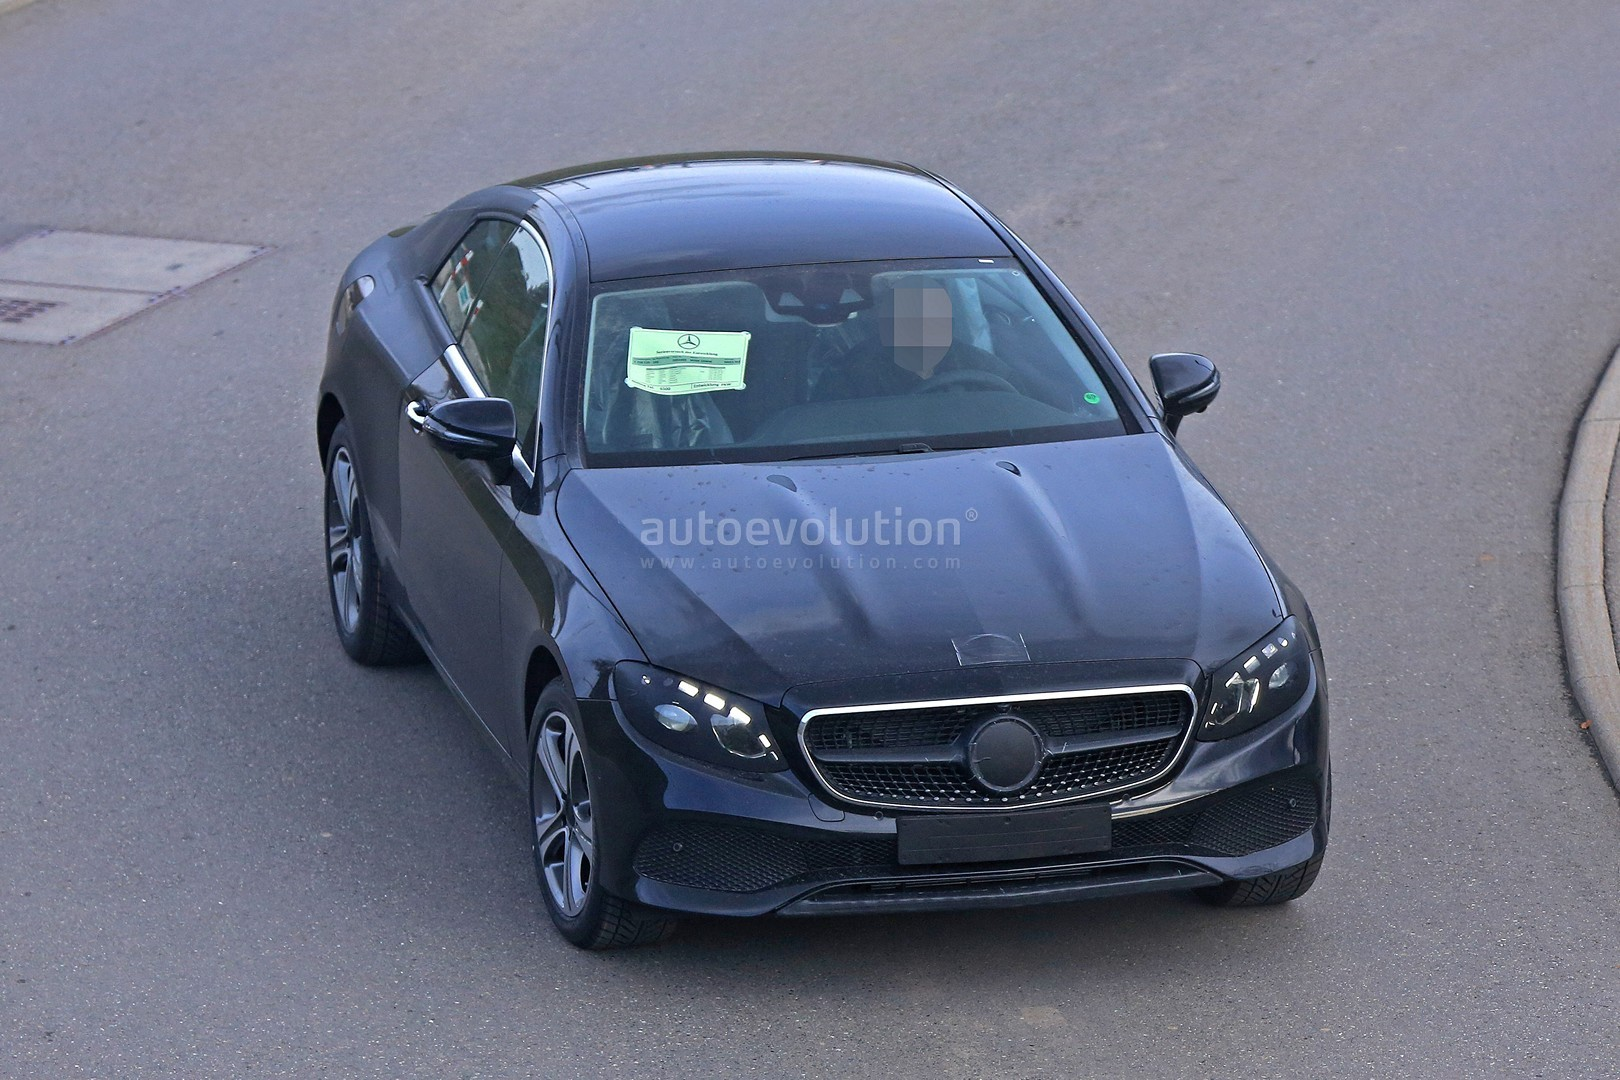 2018 mercedes amg e63 coupe what we know so far autoevolution. Black Bedroom Furniture Sets. Home Design Ideas